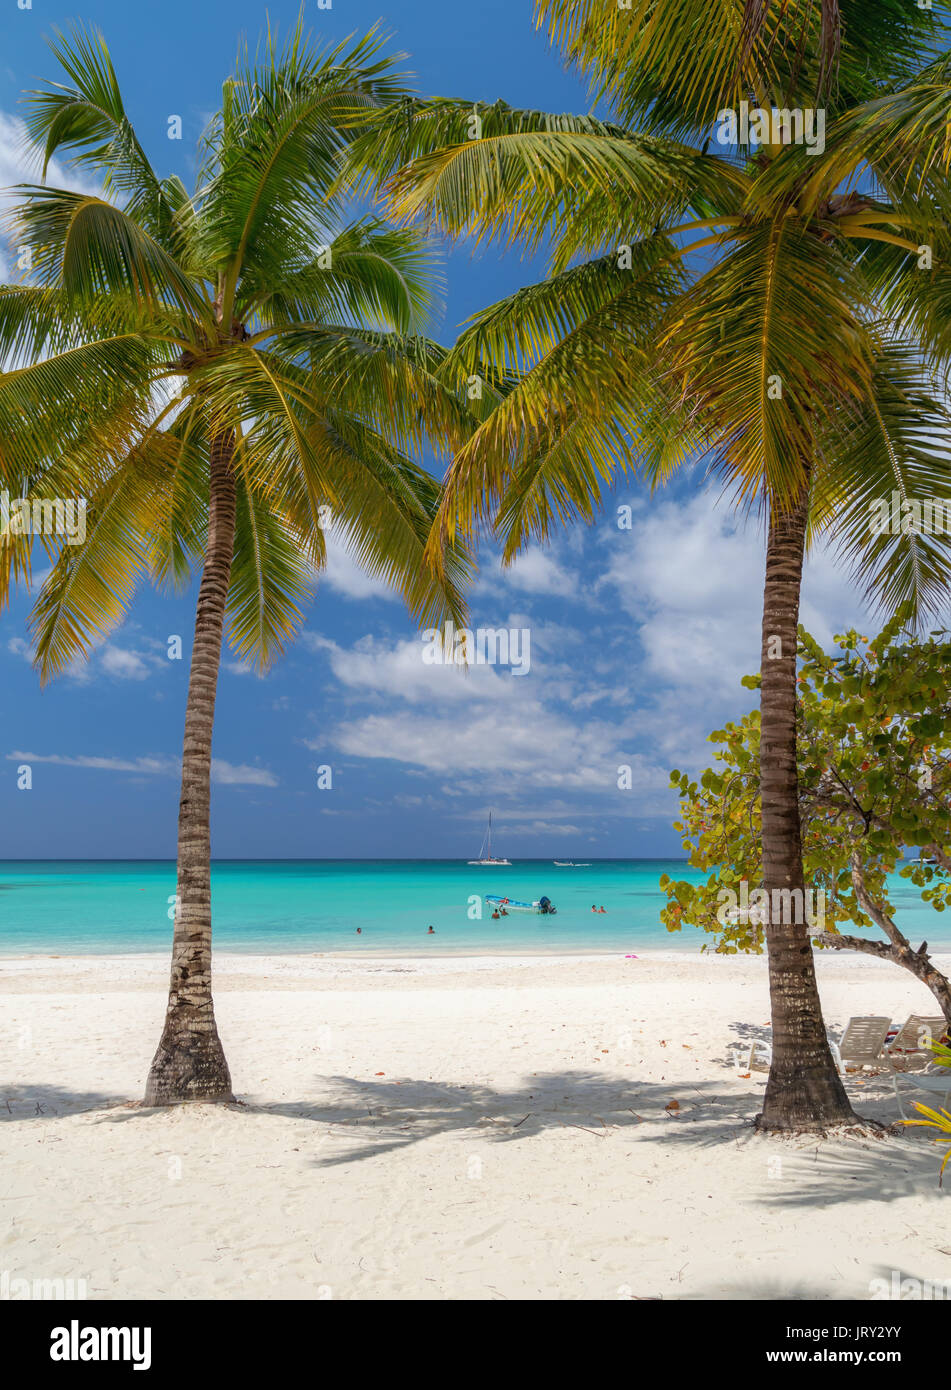 Passenger boats moored at the shore of the Dominican island of Saona. - Stock Image